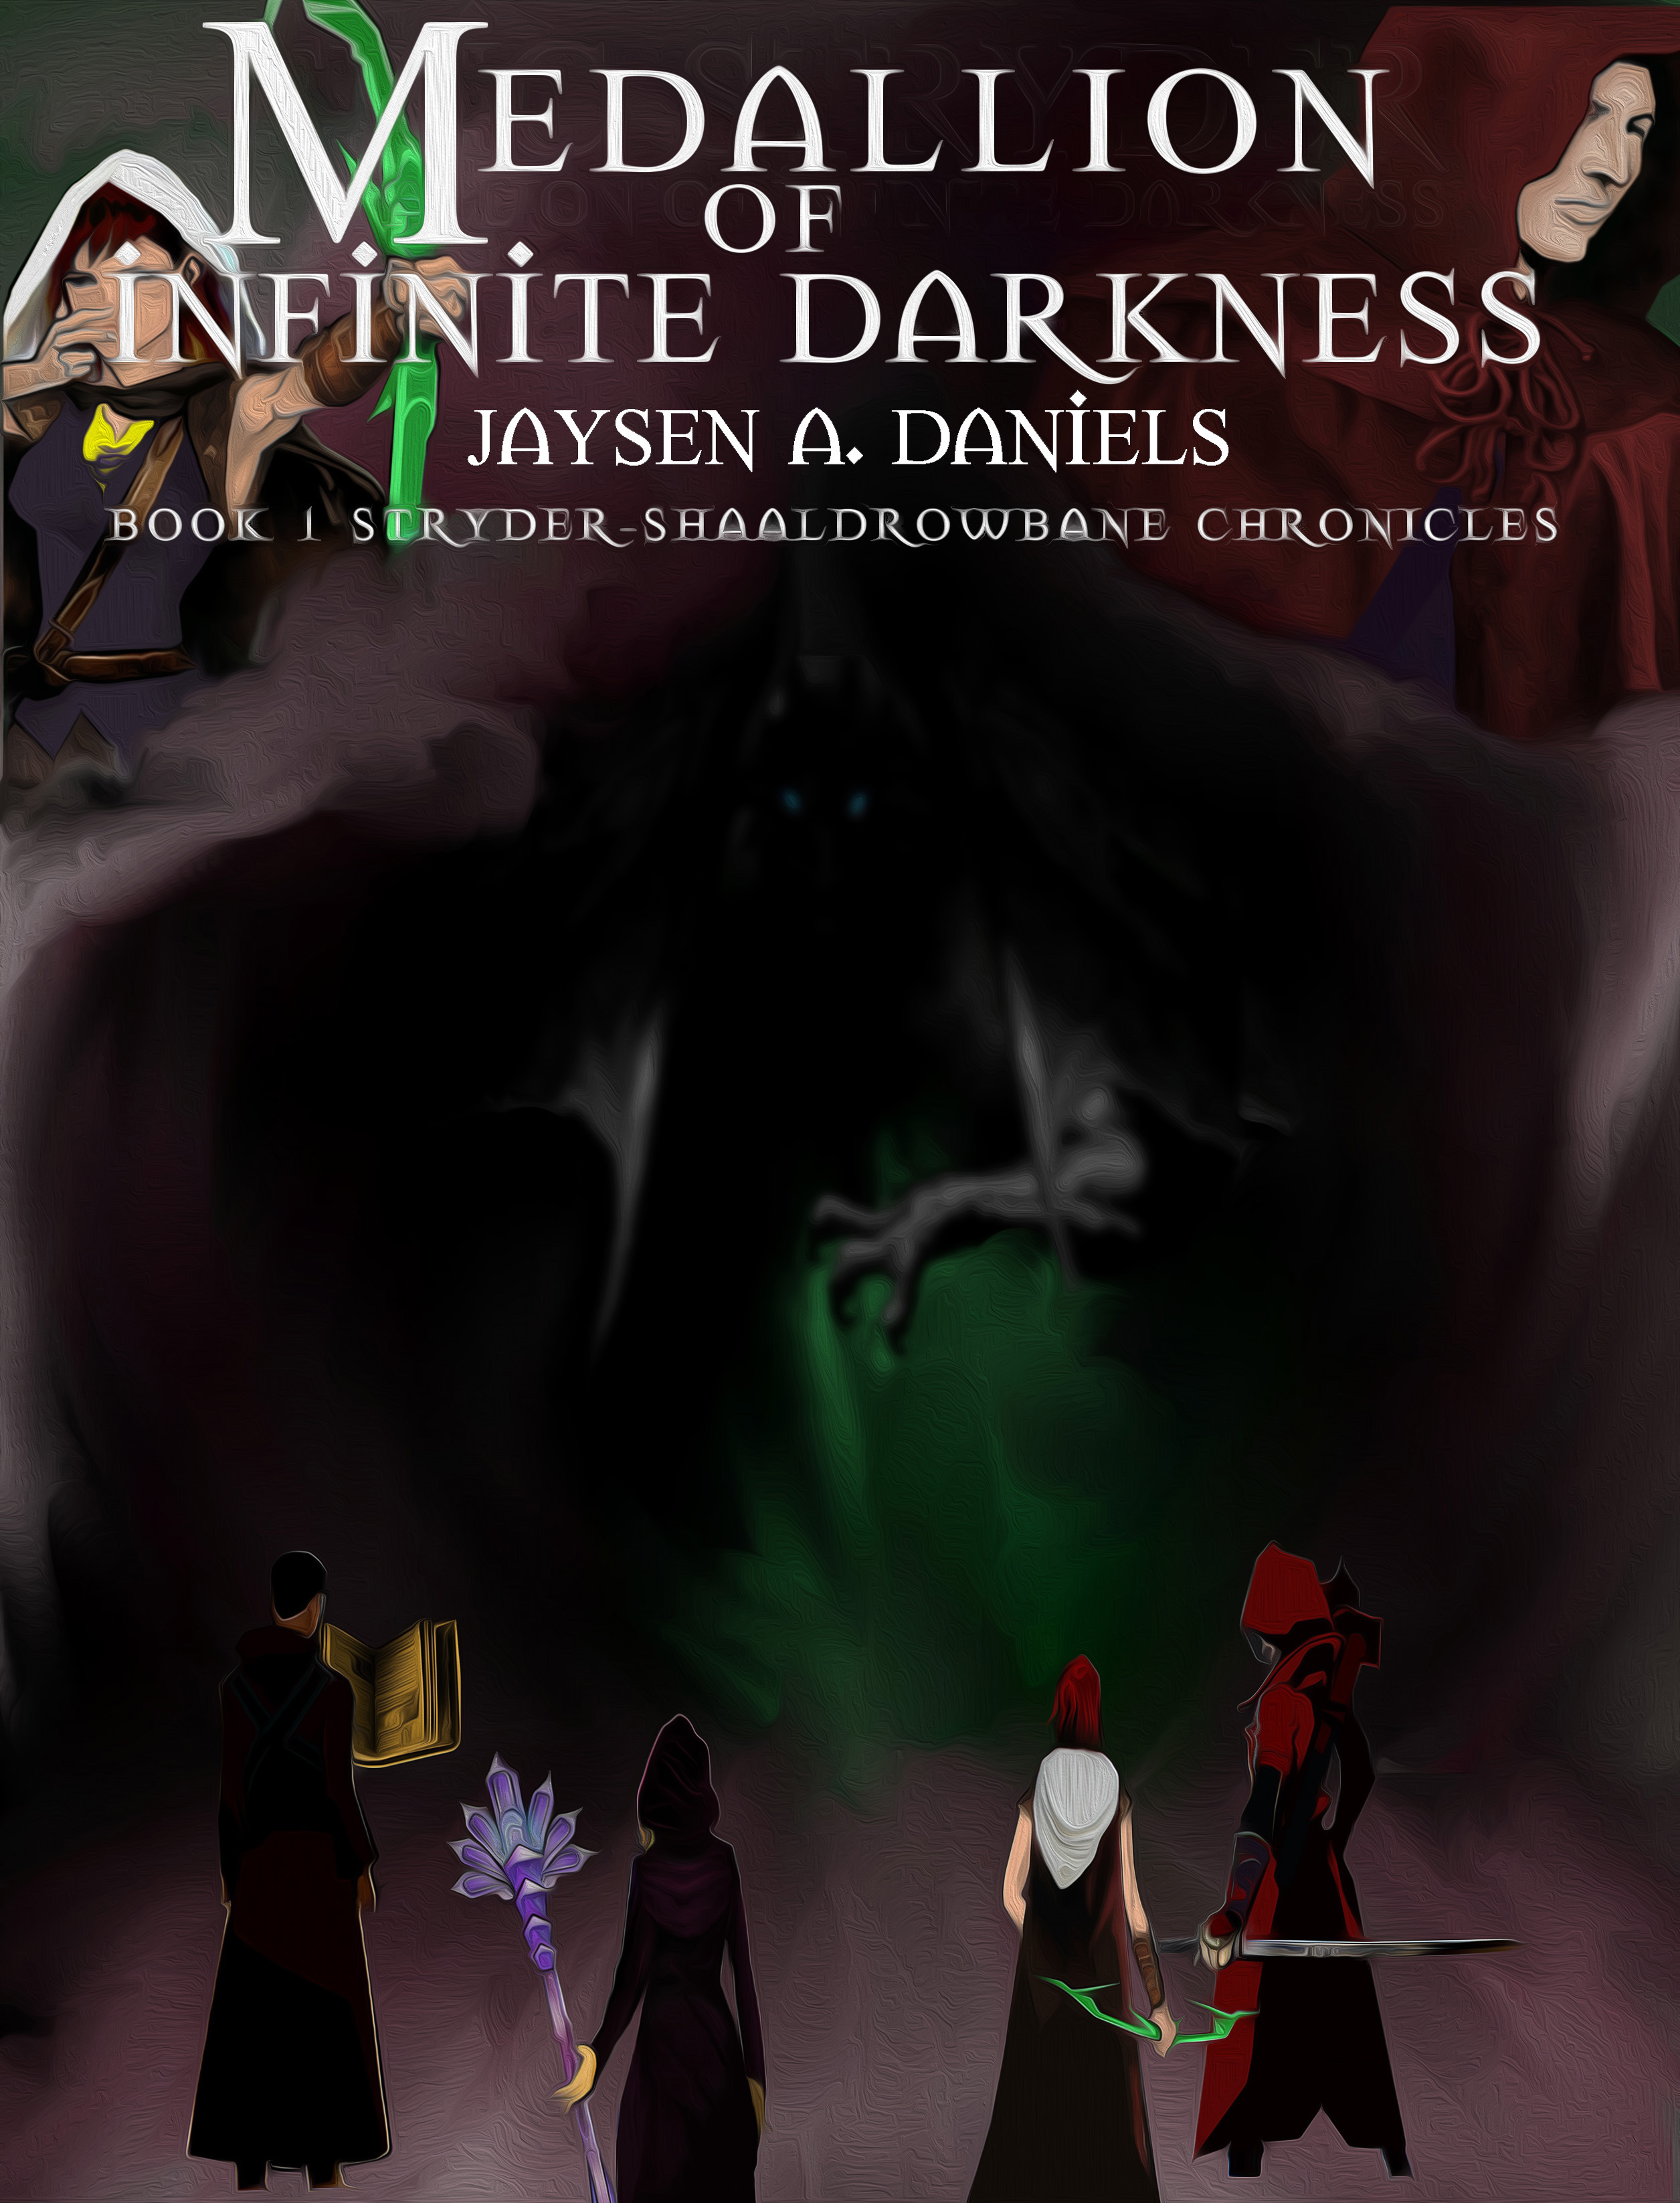 Stryder-Shaaldrowbane Chronicles Book 1-Medallion of Infinite Darkness  by  Jaysen Daniels